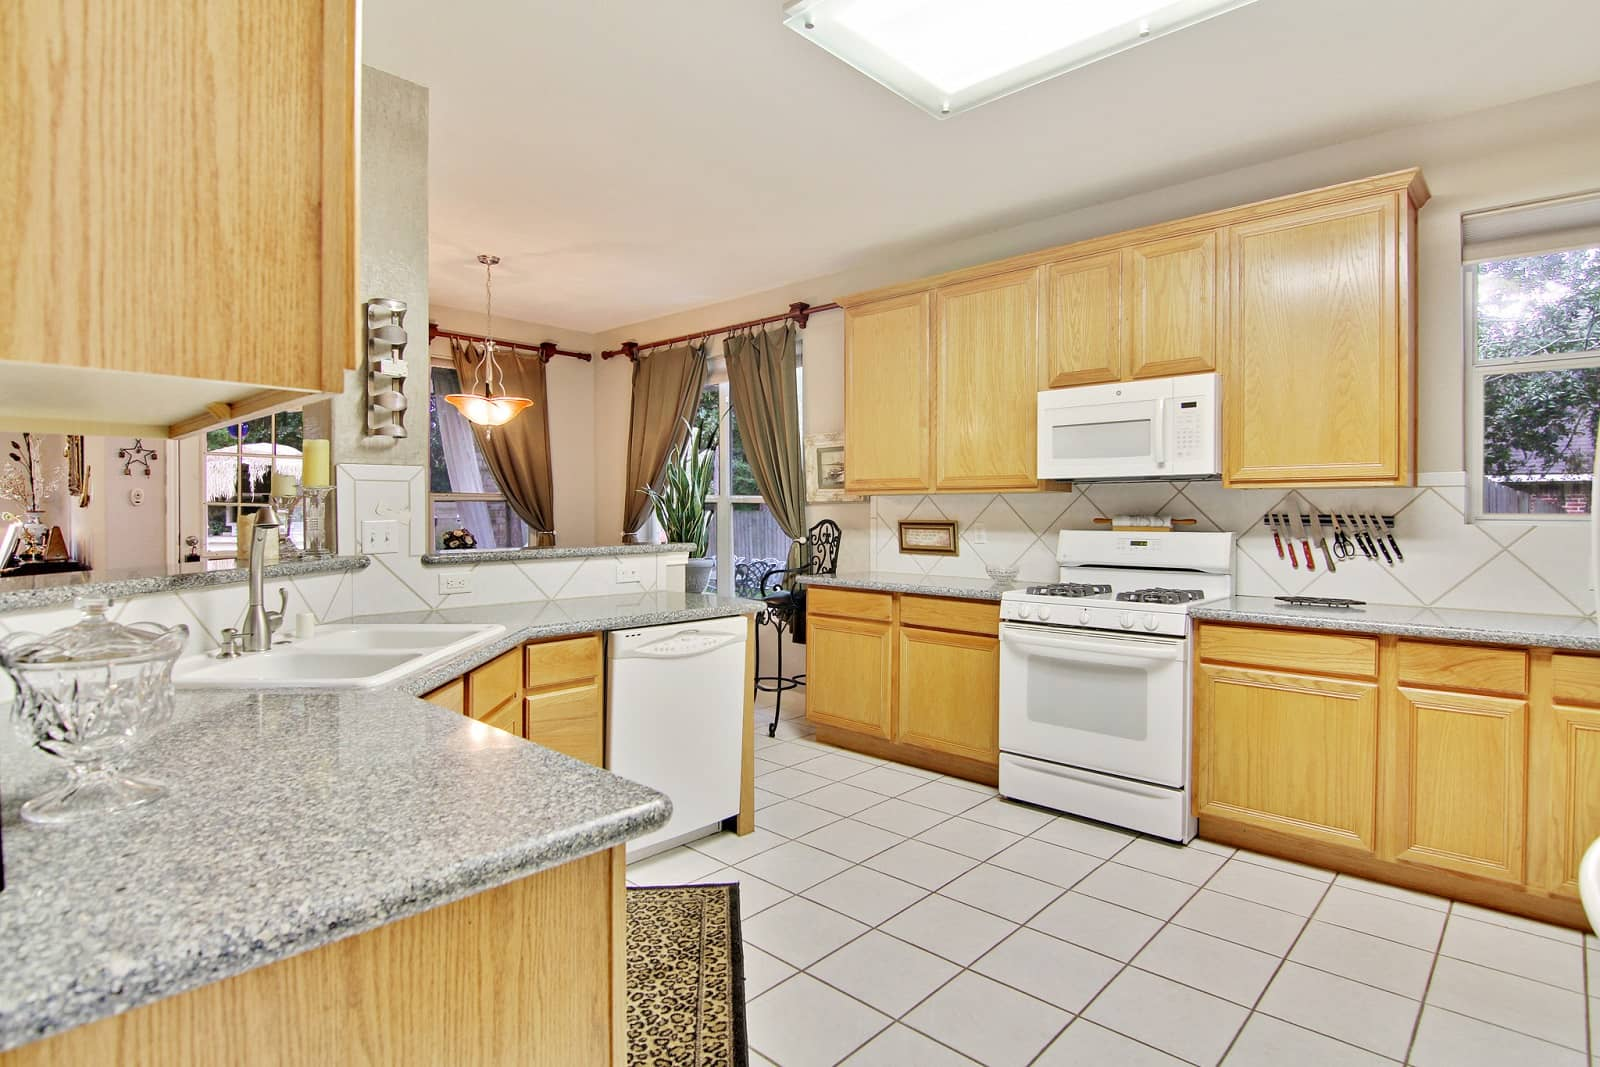 Real Estate Photographers in Conroe - TX - Kitchen View